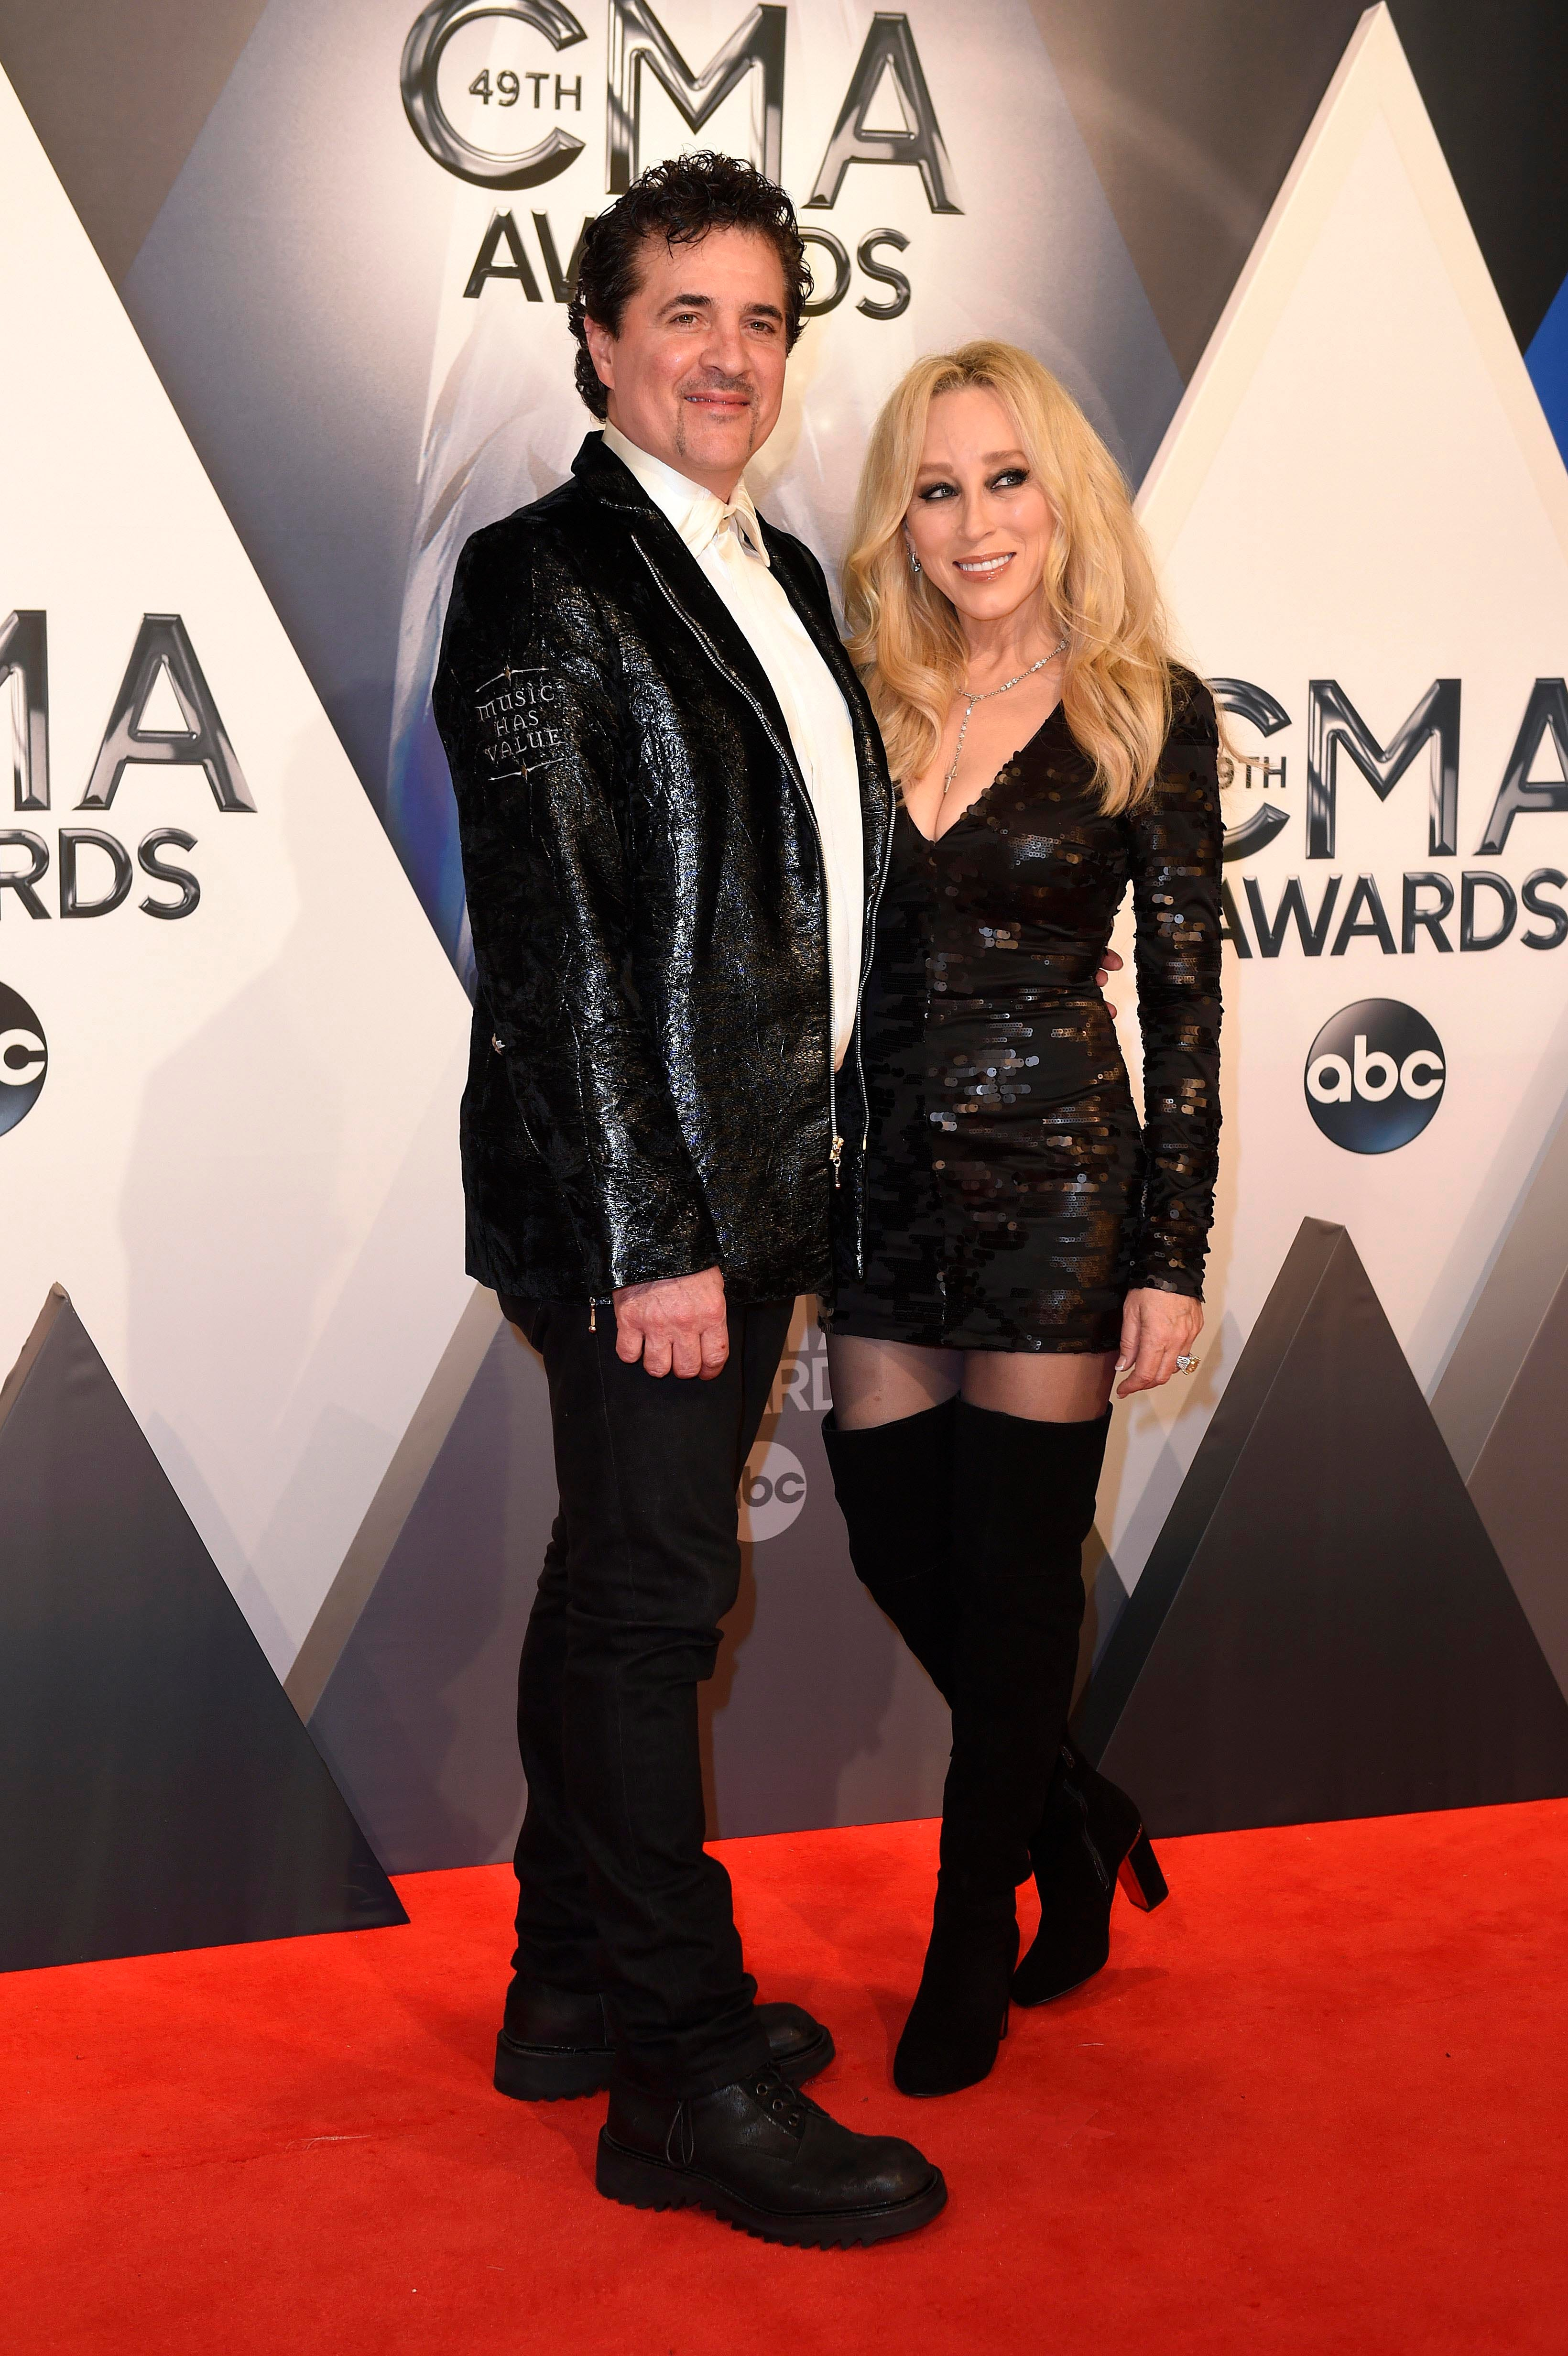 Scott Borchetta arrives on the red carpet for the 49th Annual Country Music Association Awards in 2015 at the Bridgestone Arena in Nashville, hosted by Brad Paisley and Carrie Underwood.